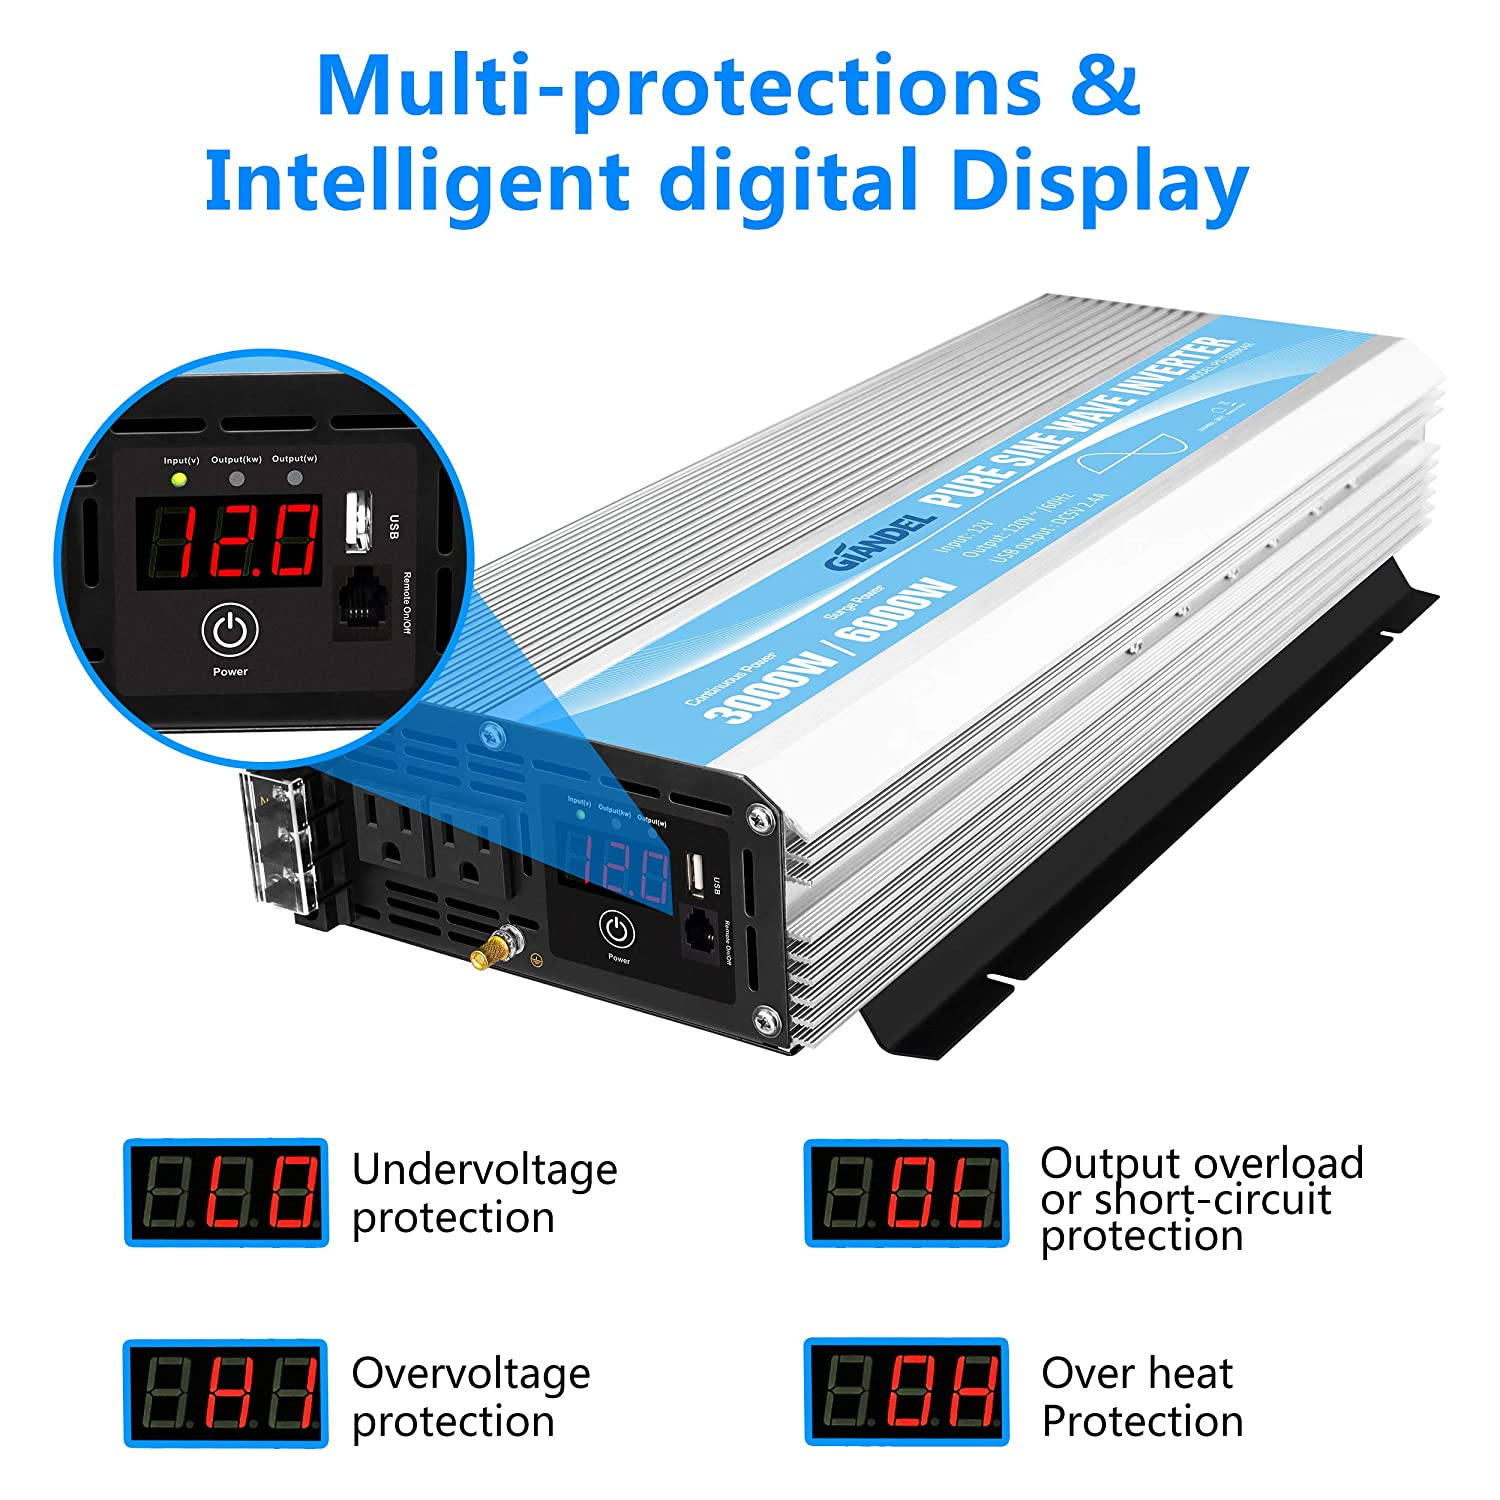 Pure Sine Wave Power Inverter 3000Watt DC 12V to AC120V with Dual AC Outlets with Remote Control and LED Display